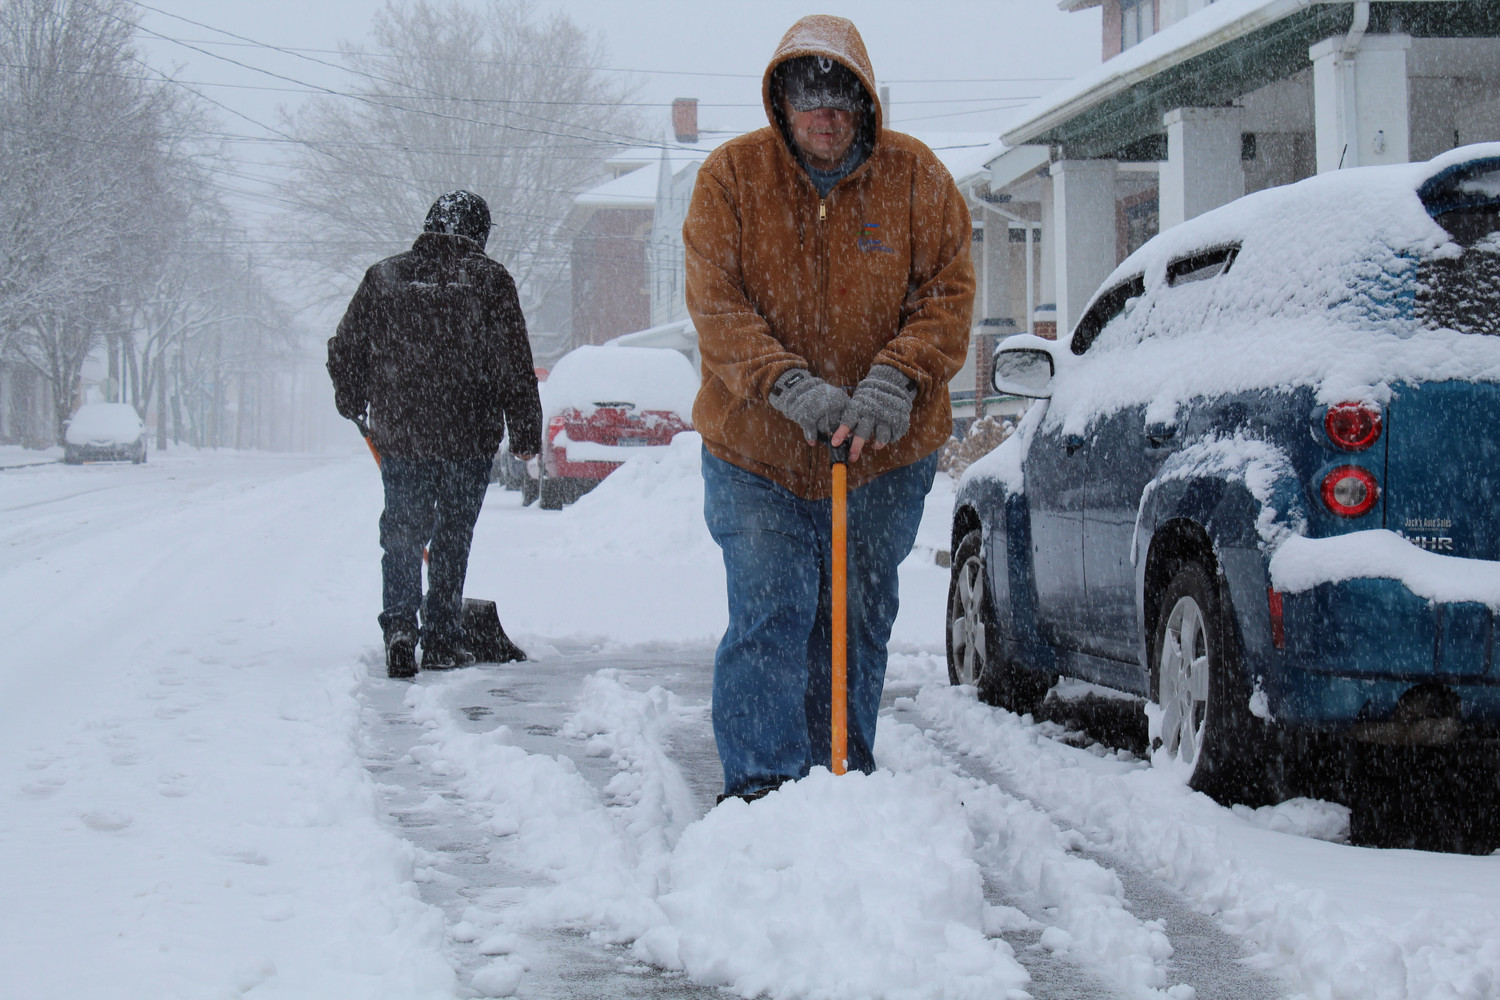 Randy Kennedy shovels snow out of the street.